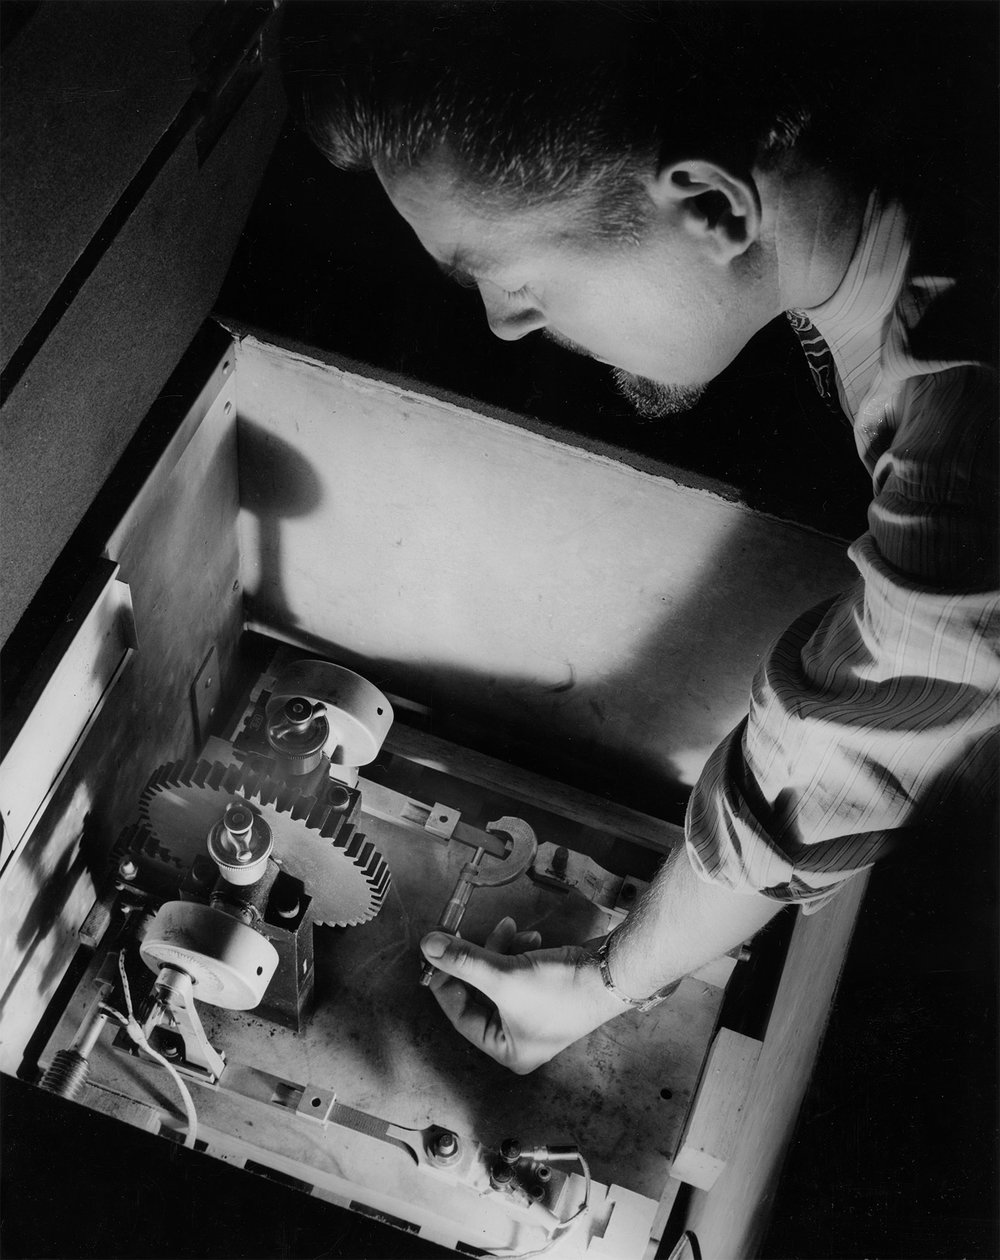 "This combination oven-refrigerator that varies temperatures from 50 degrees below zero to 200 degrees above has been constructed at the Westinghouse Research Laboratories to test the strength of Micarta plastic used in making engine gears and aircraft parts. Frank Cassel, Westinghouse research engineer, is shown measuring the dimensions of a Micarta test piece in the oven-refrigerator before beginning a ""fatigue"" test. This Micarta stock, along with a similar one to its left, will be vibrated up and down 15 times every second, day and nights for as long as three months. While one end of the plastic stick is held stationary, the other end is moved up and down rapidly by the rotating arm and wheel. The amount of load applied and changes in the flexibility of the plastic are measured by the wire resistance ""strain gauge"" at the stationary end of the vibrator. Cooled by dry ice and heated by electric coils, the oven-refrigerator provides extremes of cold and heat to aid in the development of plastic equipment that gives maximum performance at any working temperature."